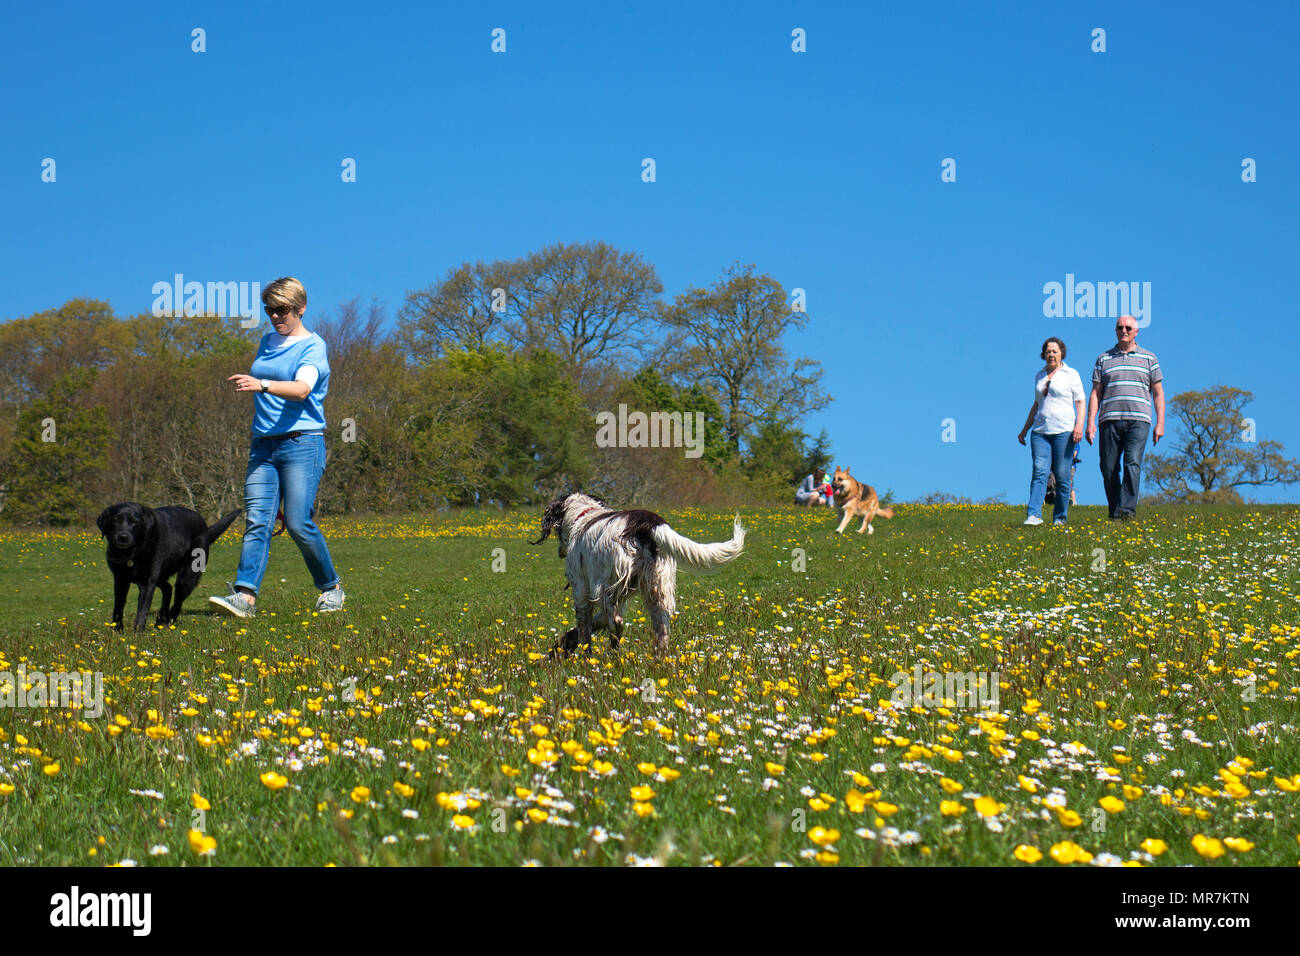 people walking dogs park sunny spring day, cornwall, england, britain, uk. - Stock Image